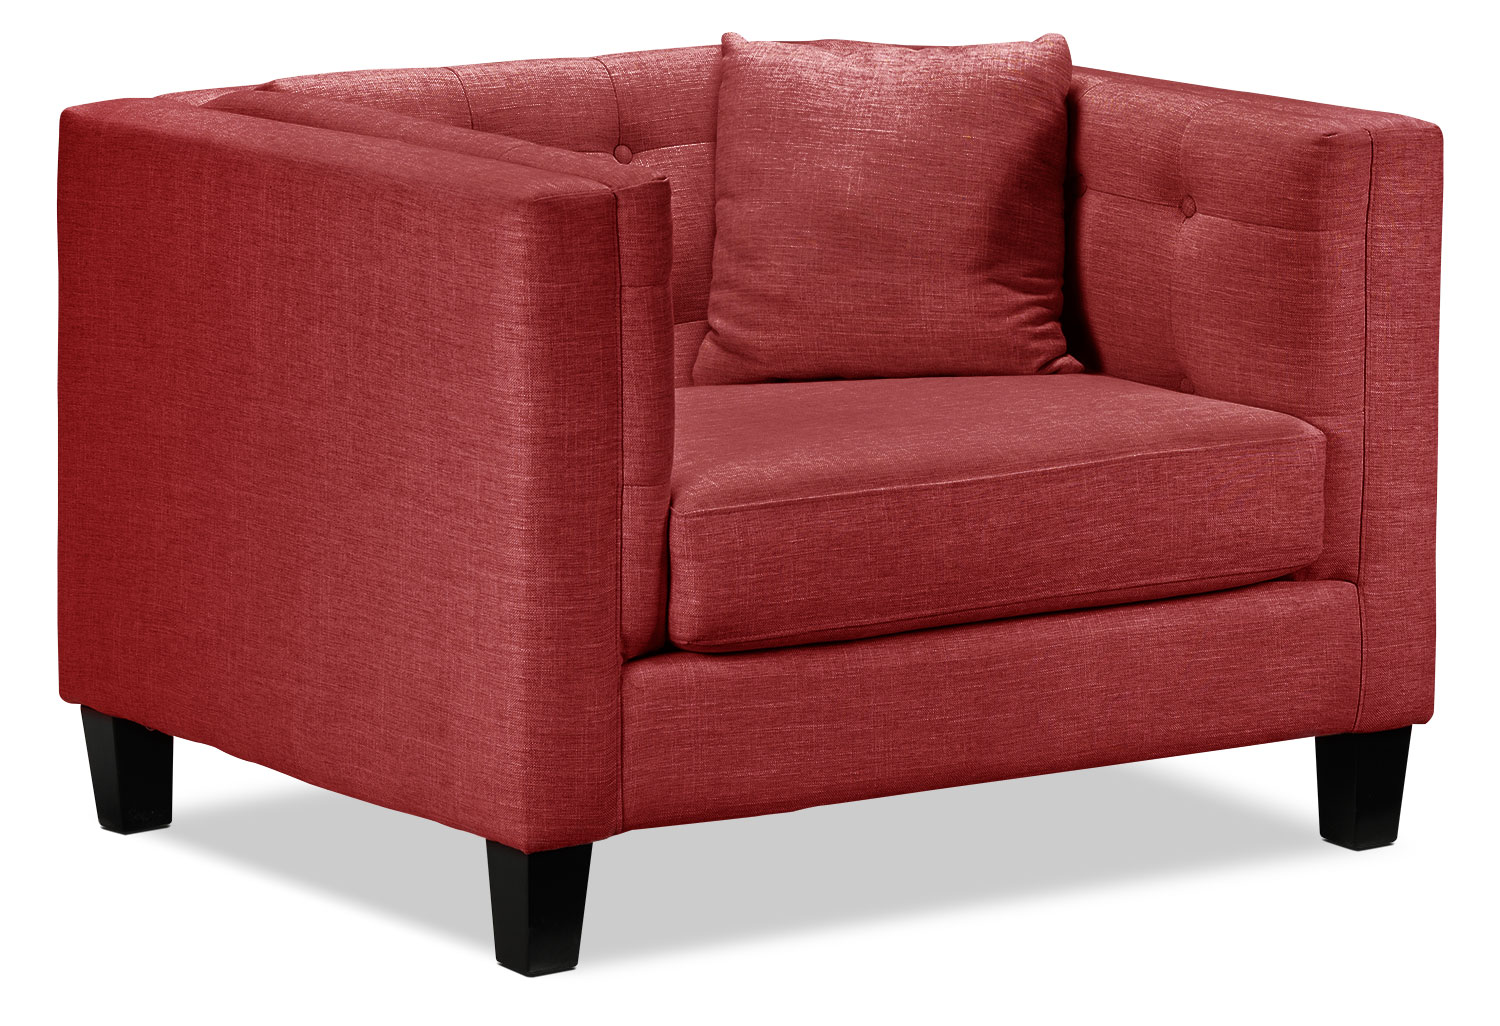 Living Room Furniture - Astin Chair and a Half - Red